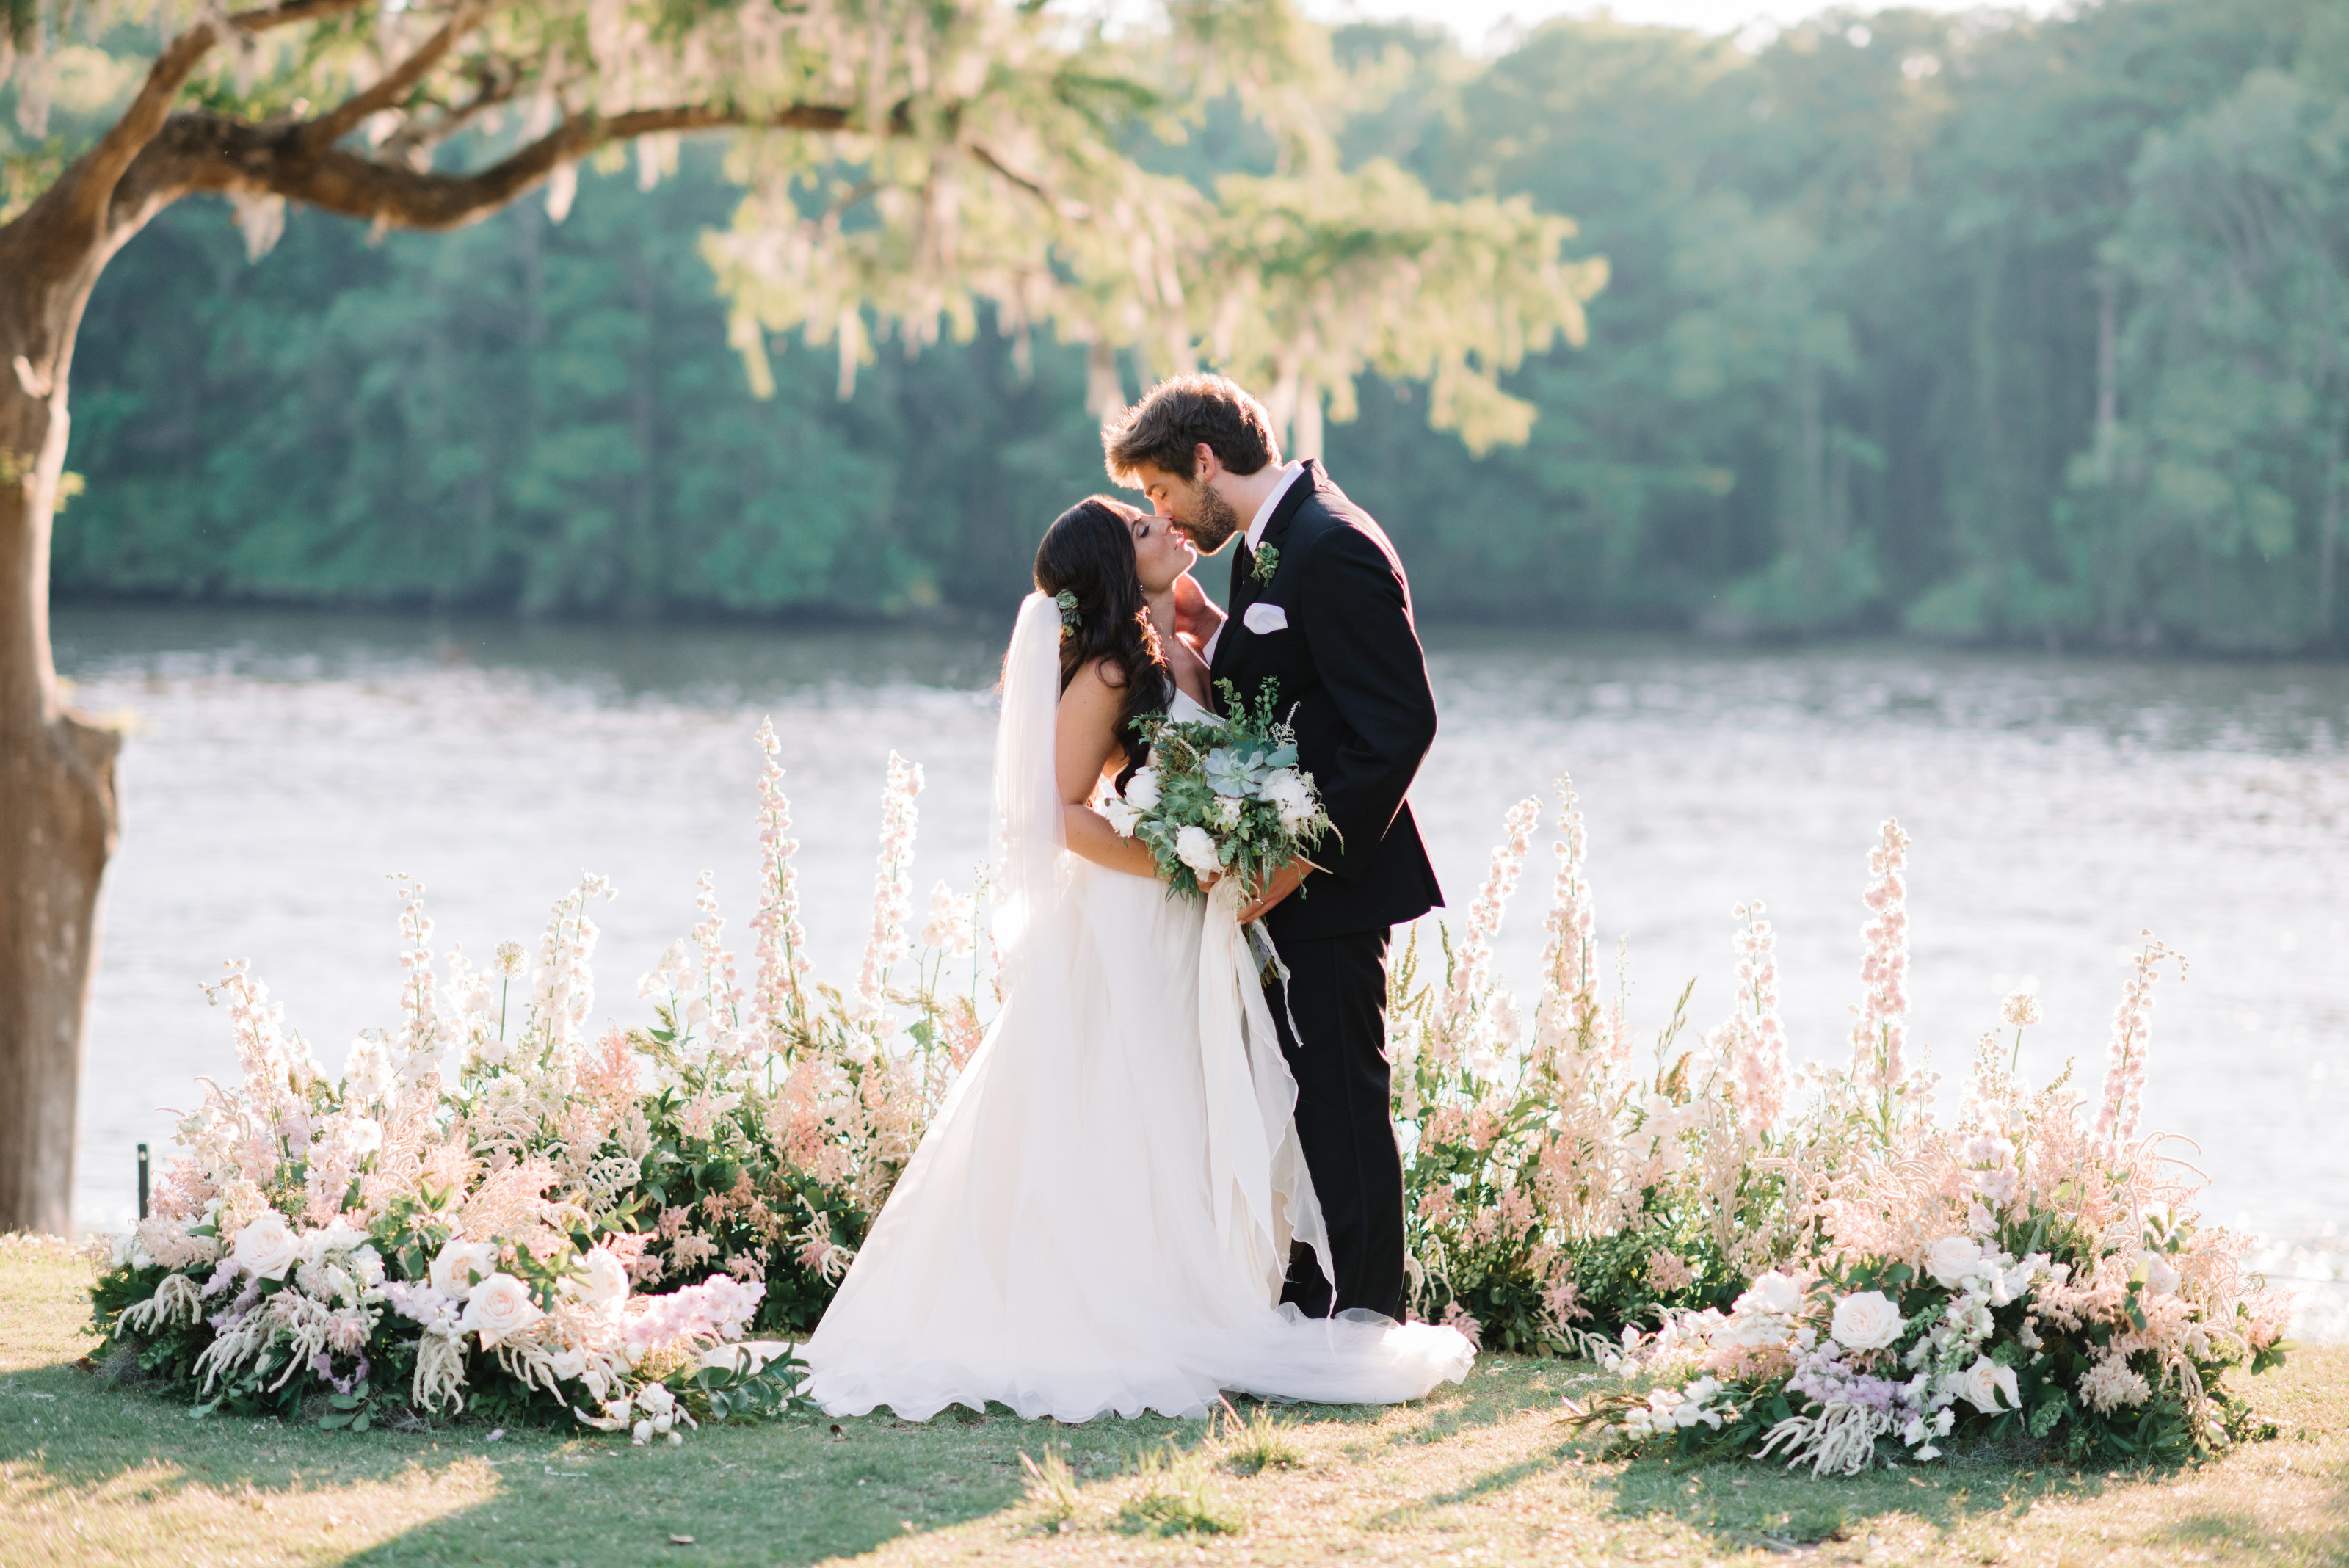 Myrtle Beach Wedding Photography - Top Wedding Photographer in Myrtle Beach